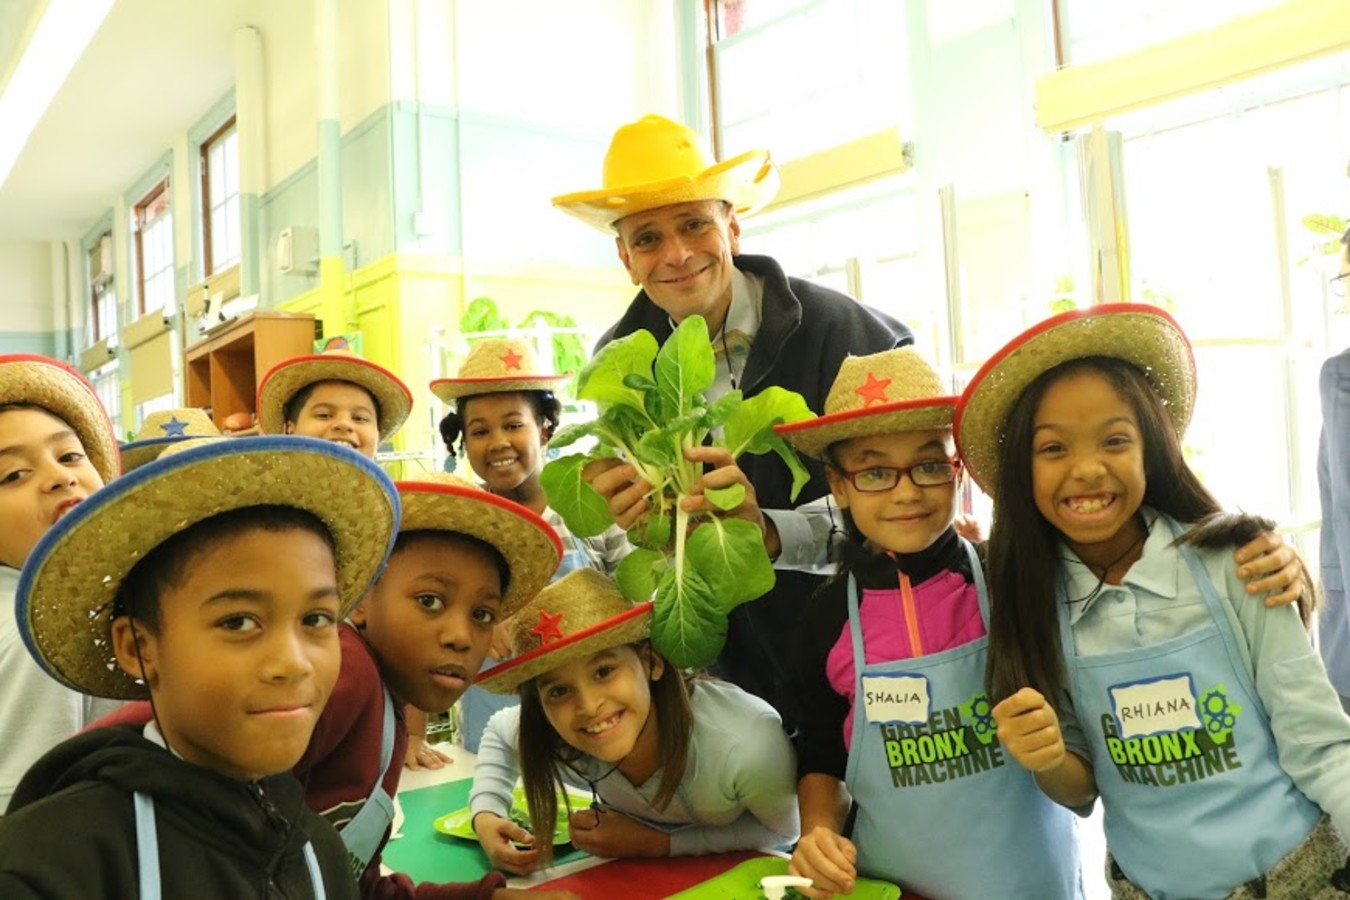 Stephen Ritz and Kids